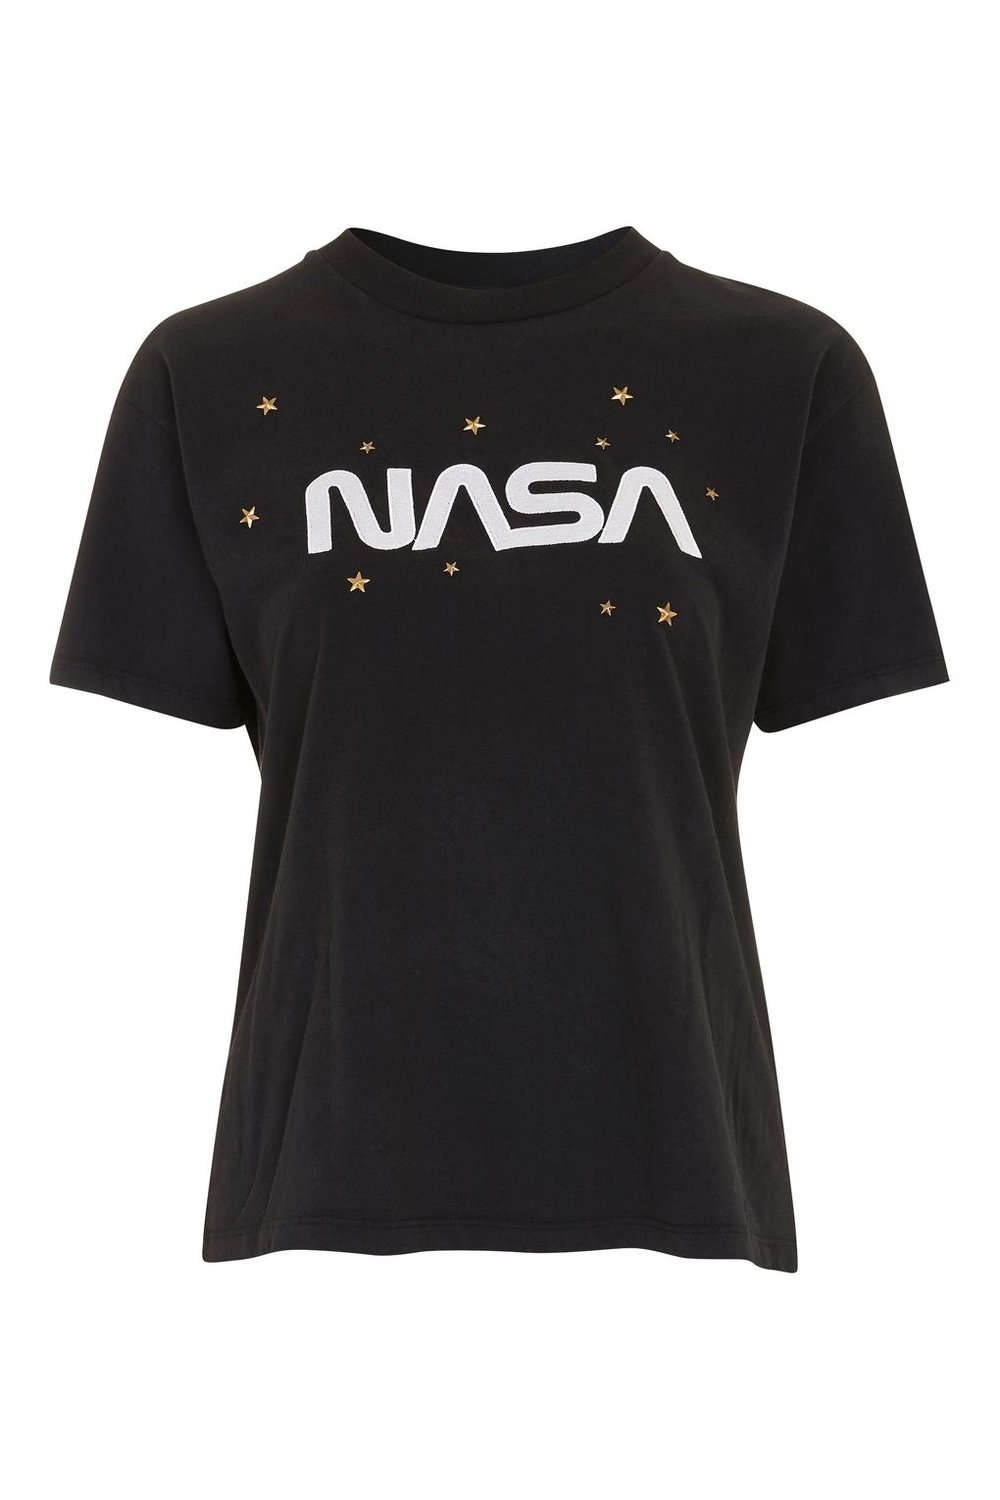 NASA Star Studded T-Shirt